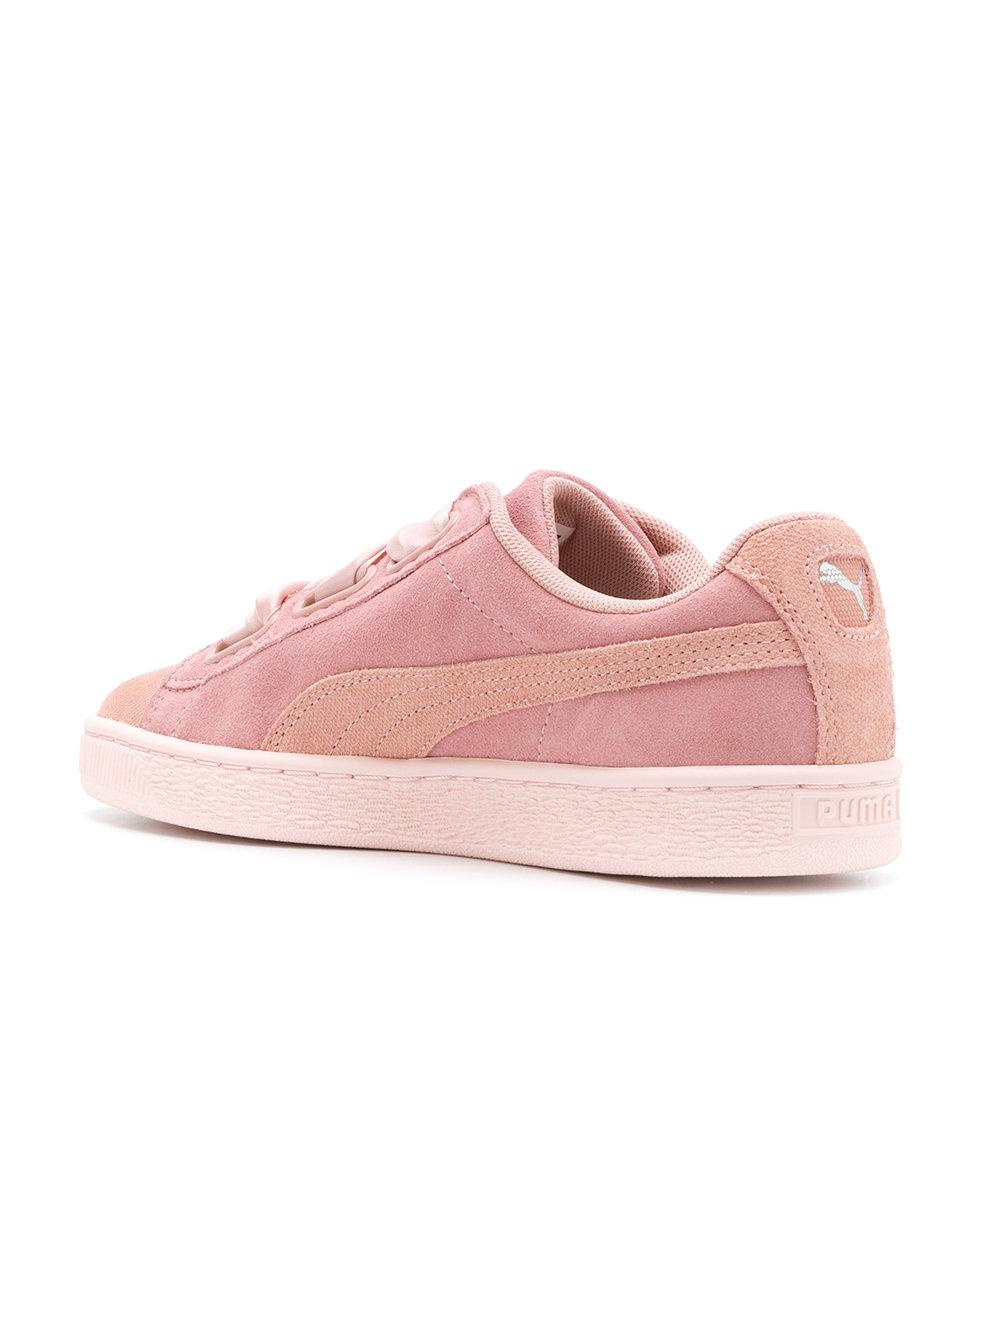 Puma embroidered floral low top sneakers - Pink & Purple farfetch rosa